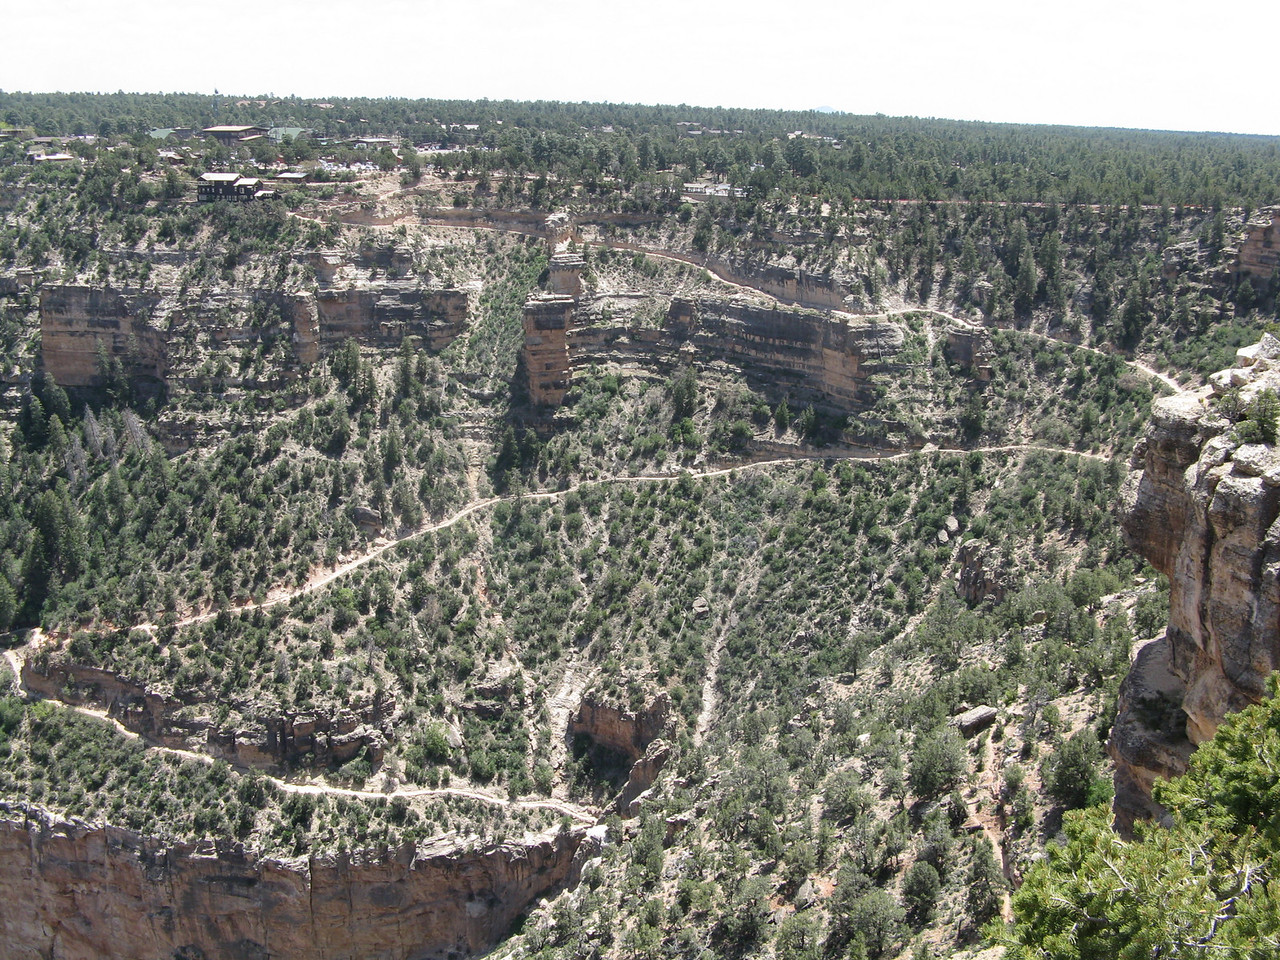 This wide view shows the Bright Angel Trail above the Coconino Sandstone.  This is the last 3/4 mile or so of the trail.  The Second Tunnel occurs where the trail ends in the image, just above the Coconino cliffs, but the tunnel cannot be seen in this view.